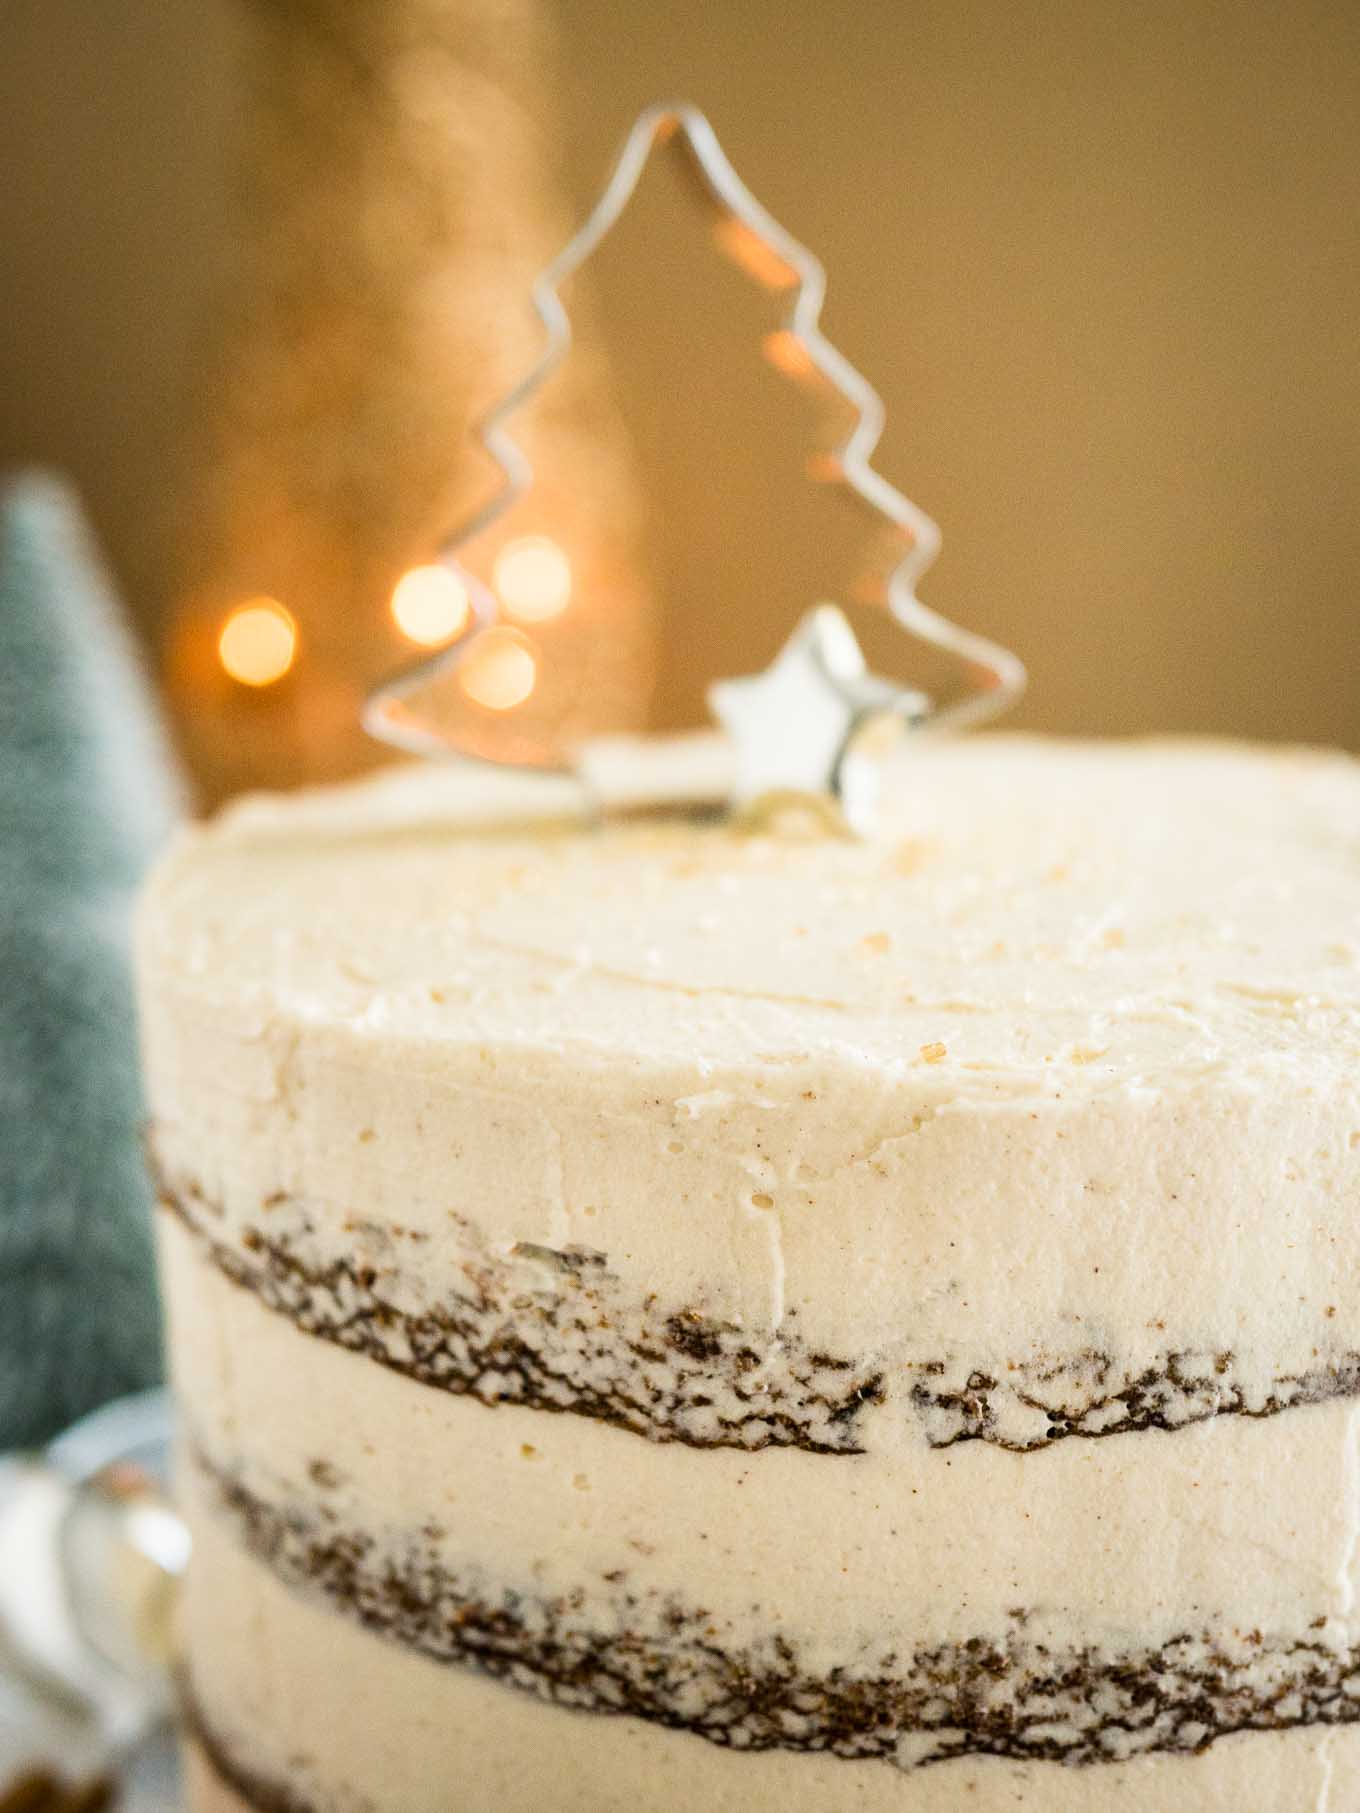 how to make gingerbread cake without molasses